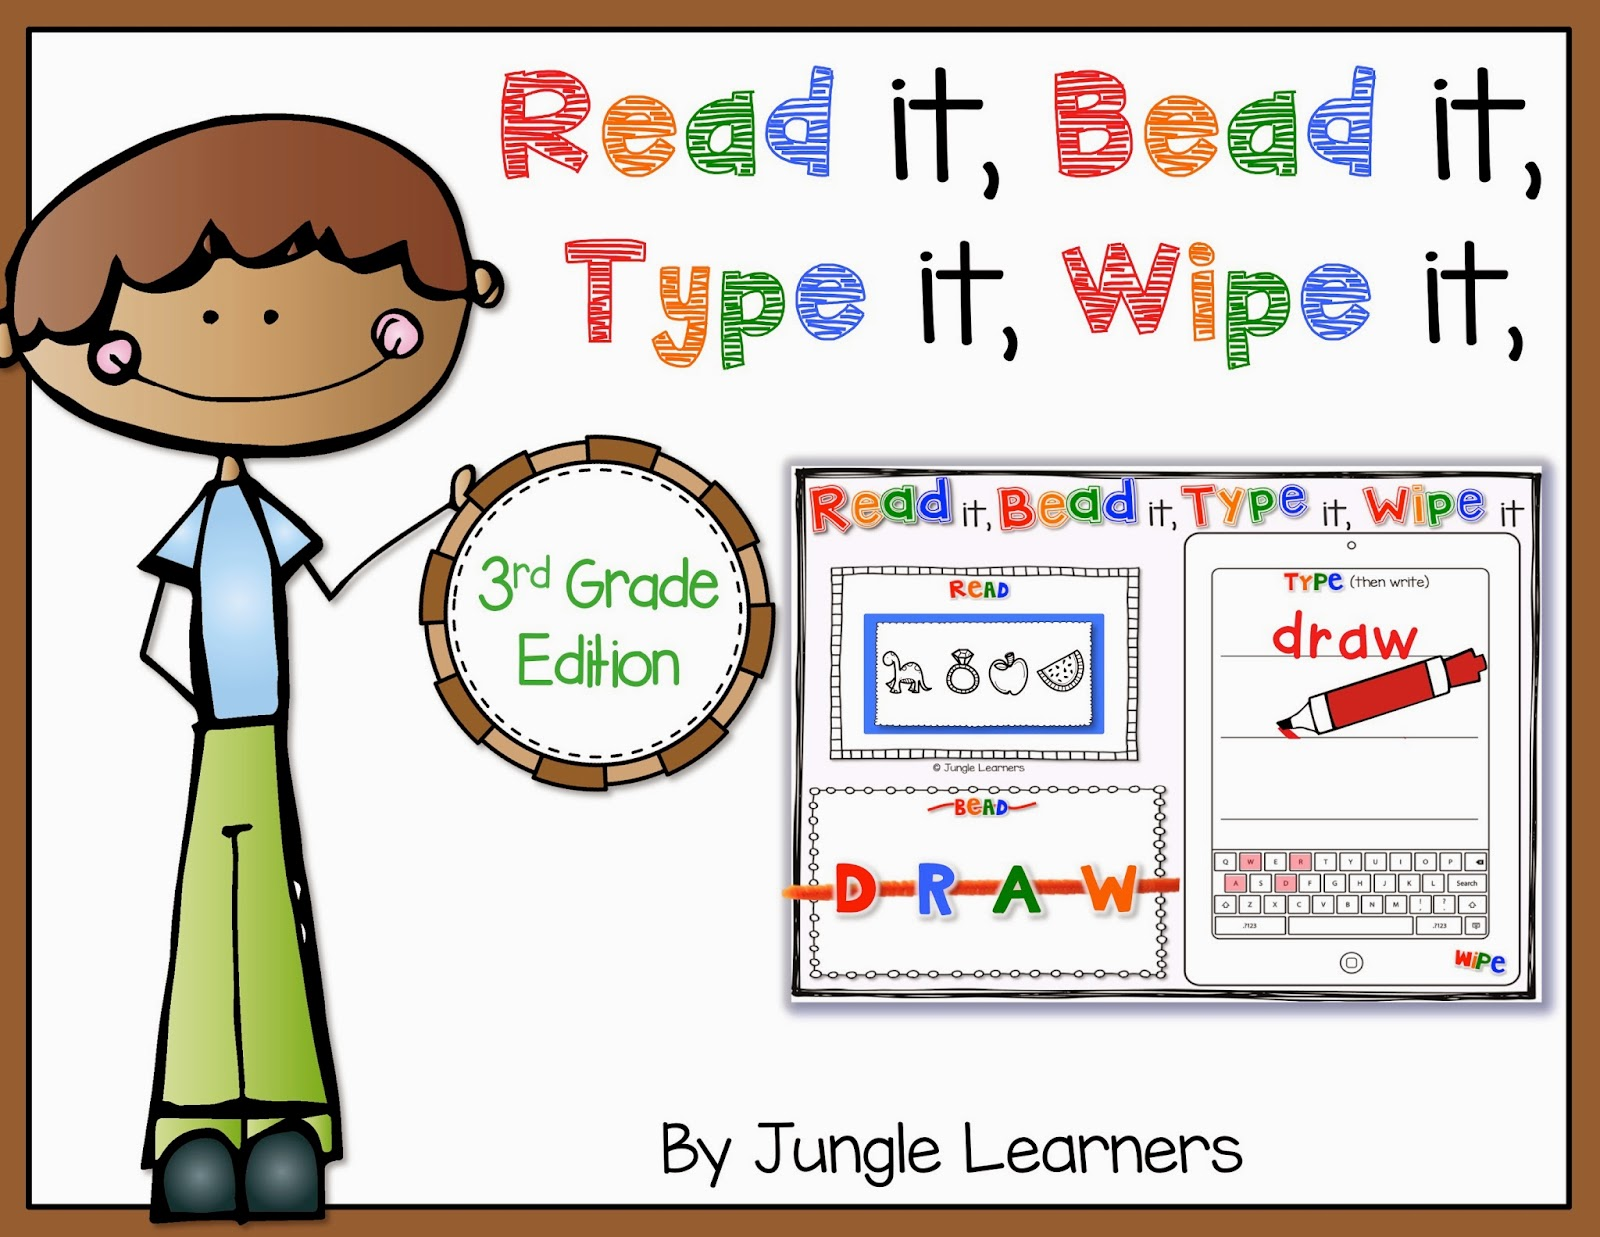 Read it, Bead it, Type it, Wipe it [3rd Grade Edition]